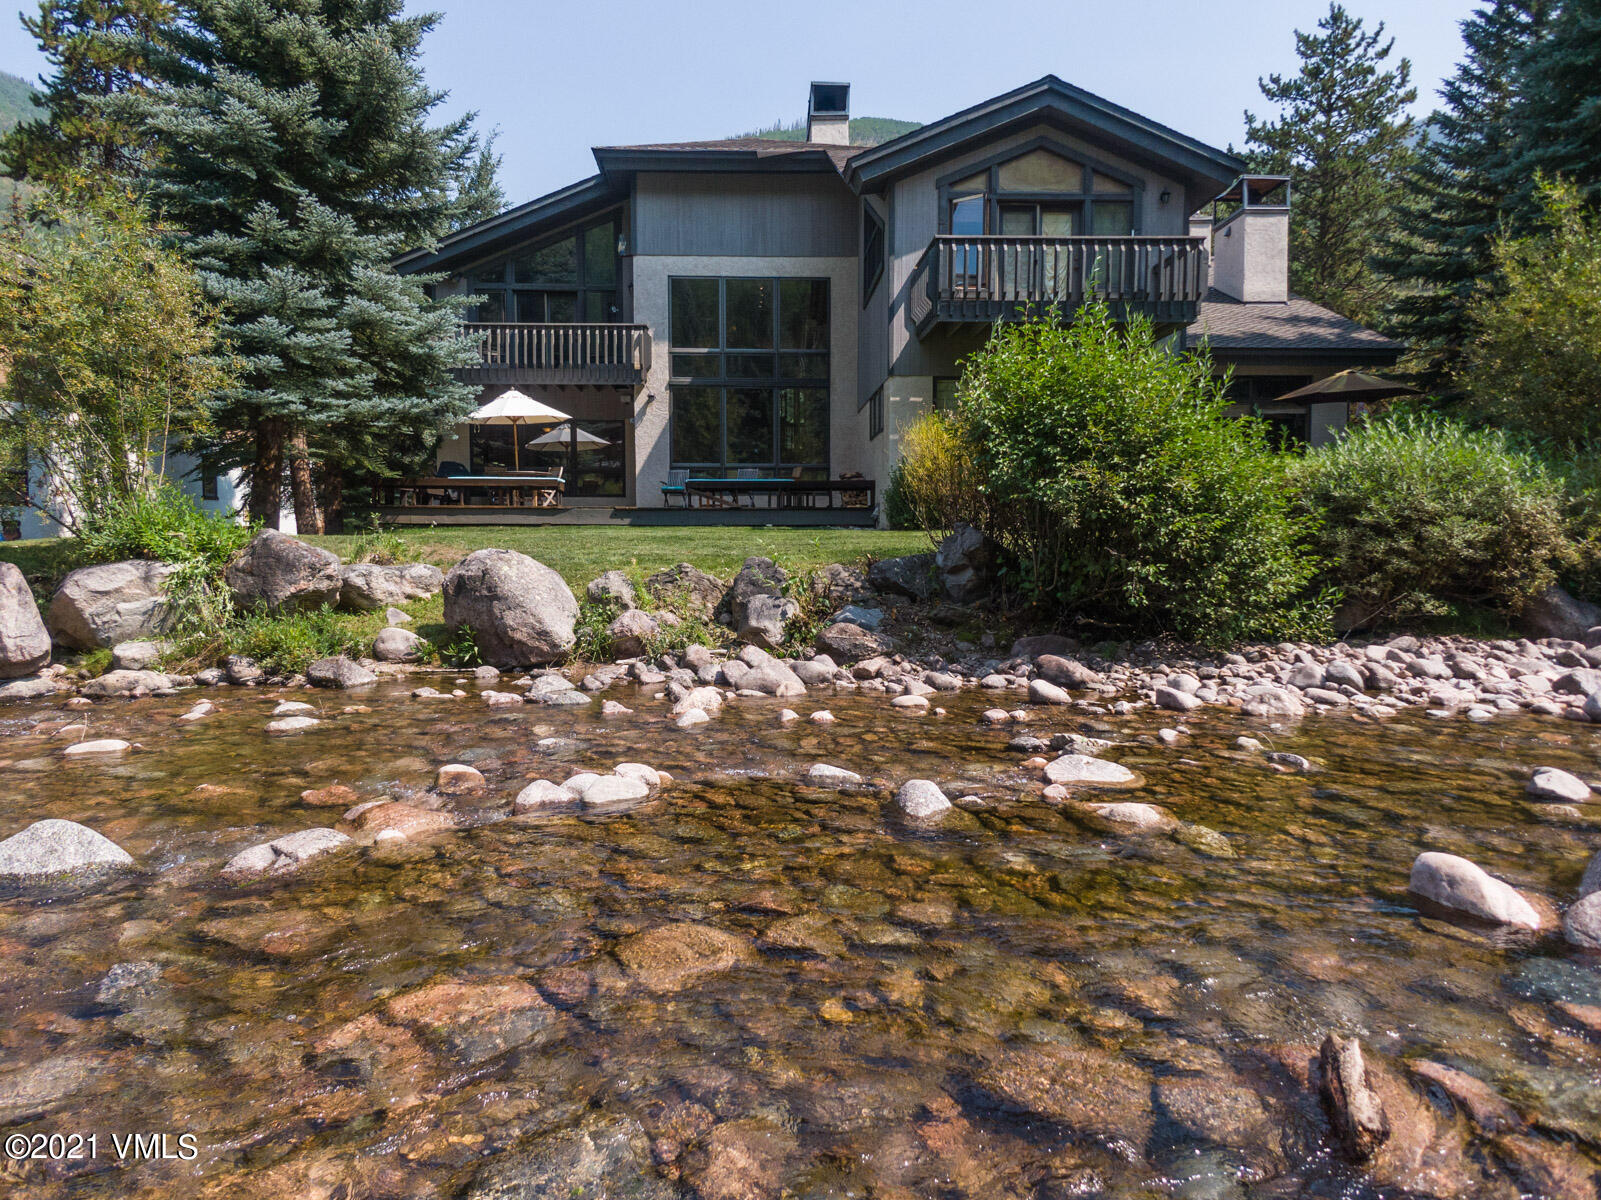 This rarely available, waterfront duplex in the coveted Gore Creek Park subdivision is bound to impress. A functional, flowing floor plan offers 4-Bedrooms, each with its own ensuite bathroom, powder room, expansive great room containing a kitchen, dining room, tons of living space all with south-facing views of Gore Creek and the East Vail hillside. Nestled in a quiet, private location only steps from The Sims Market and The Town of Vail Bus Stop provides unbeatable access to all of the amenities and activities the Vail Valley has to offer.